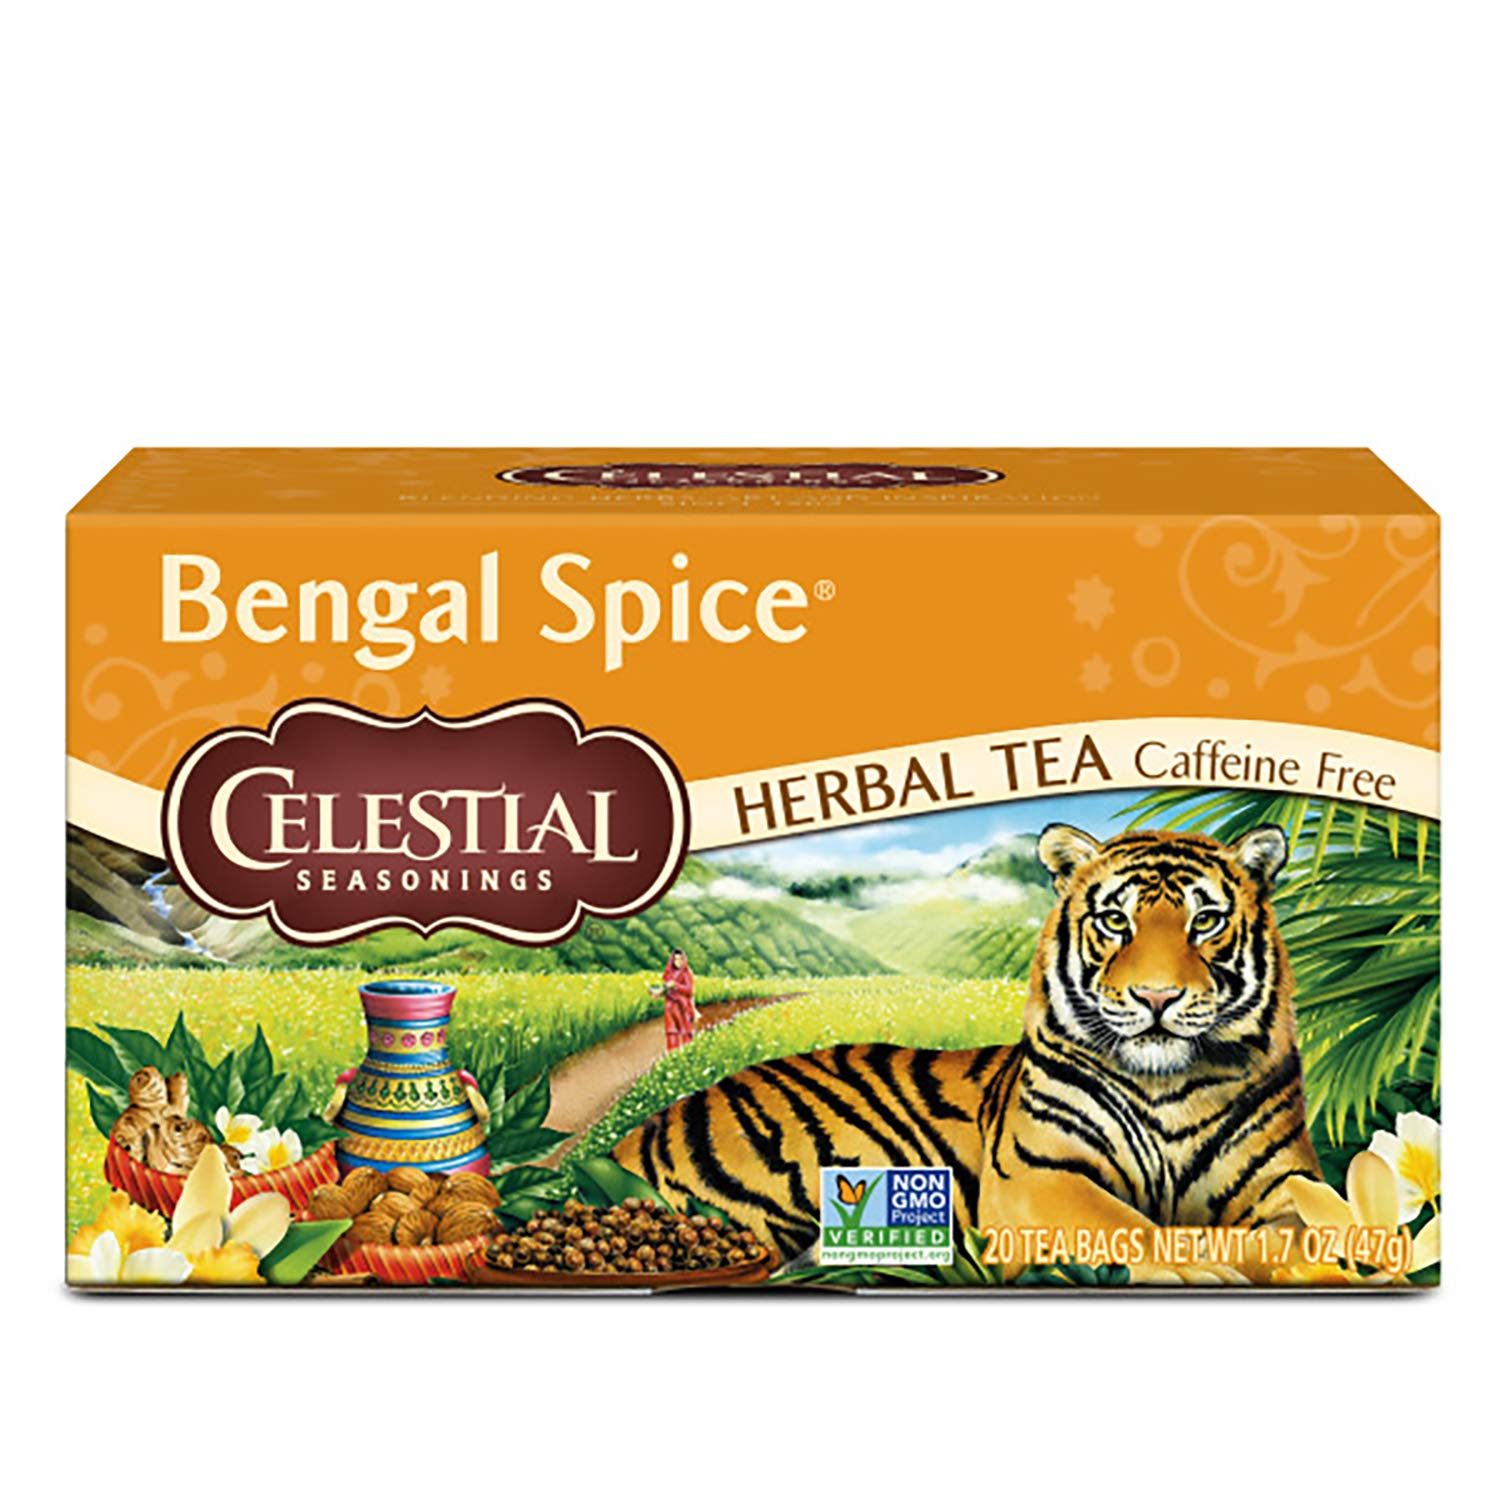 Celestial Seasonings Bengal Spice Herbal Tea, 20 ct